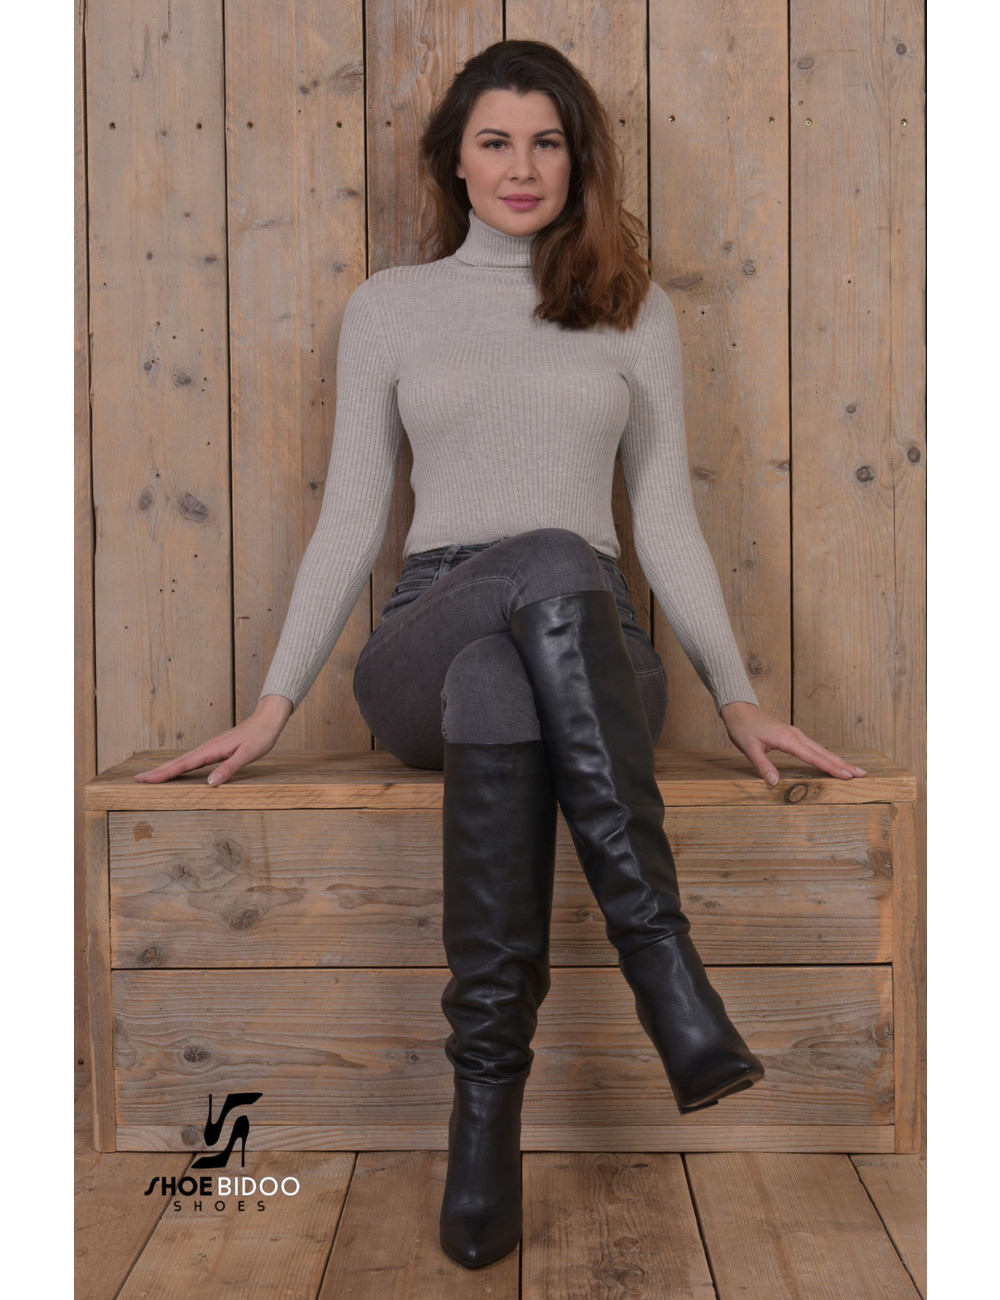 Sanctum Custom Olga in Italian leather knee boots